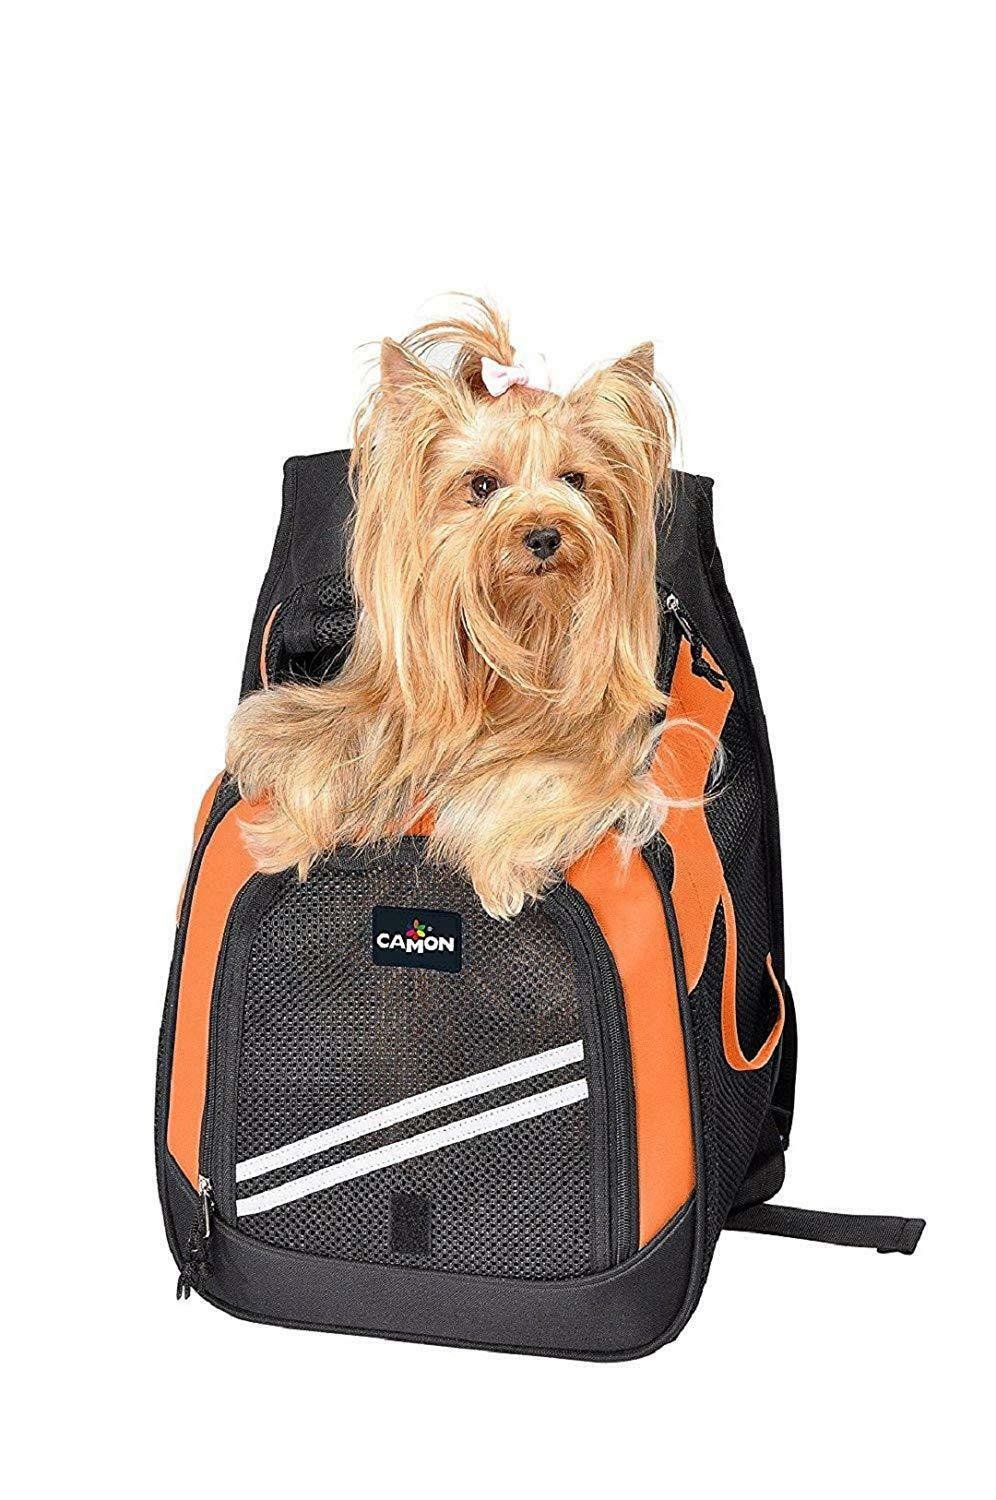 caldo Pooch Pooch Pooch Pouch Backpack Front Pet Carrier Adjustable Pet Back Pack Pet Carrier  il prezzo più basso